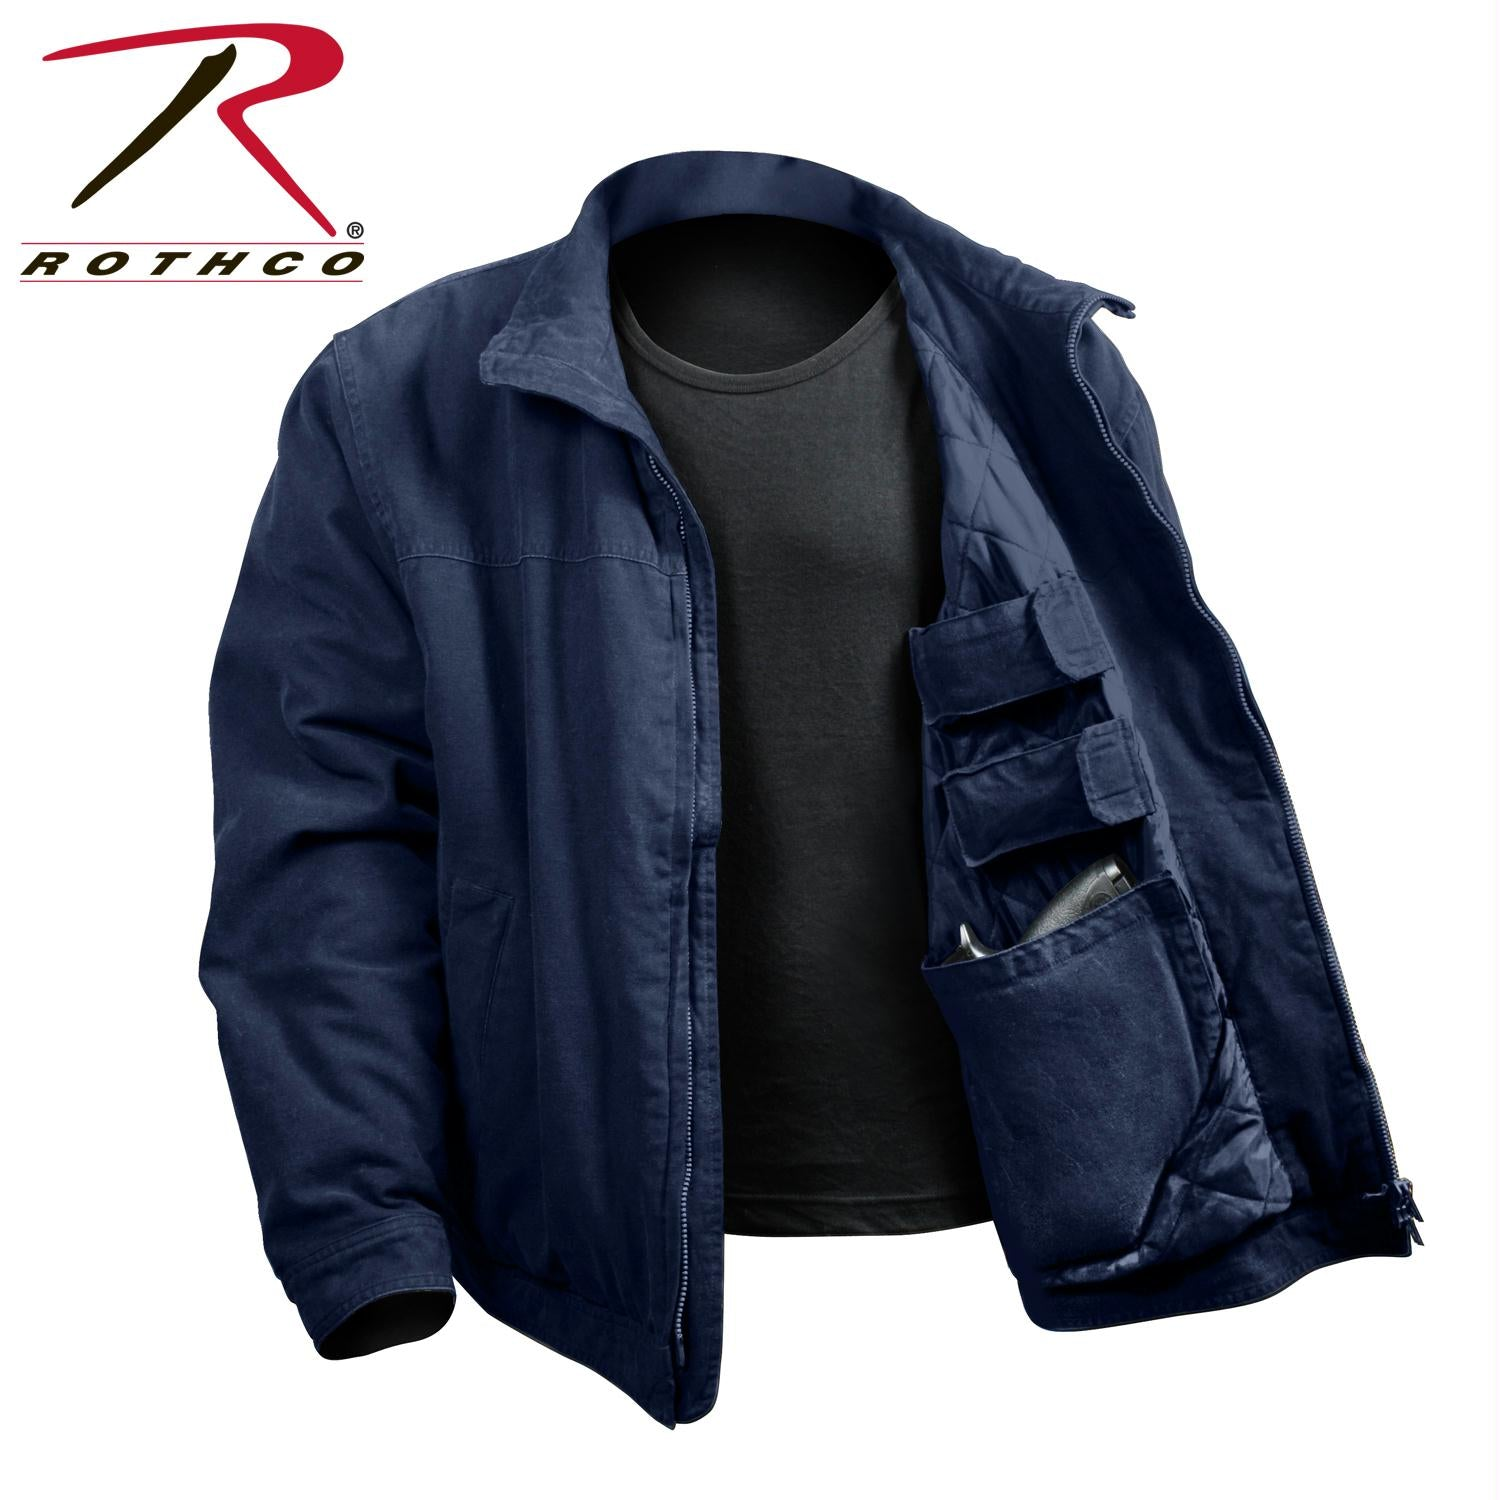 Rothco 3 Season Concealed Carry Jacket - Navy Blue / L